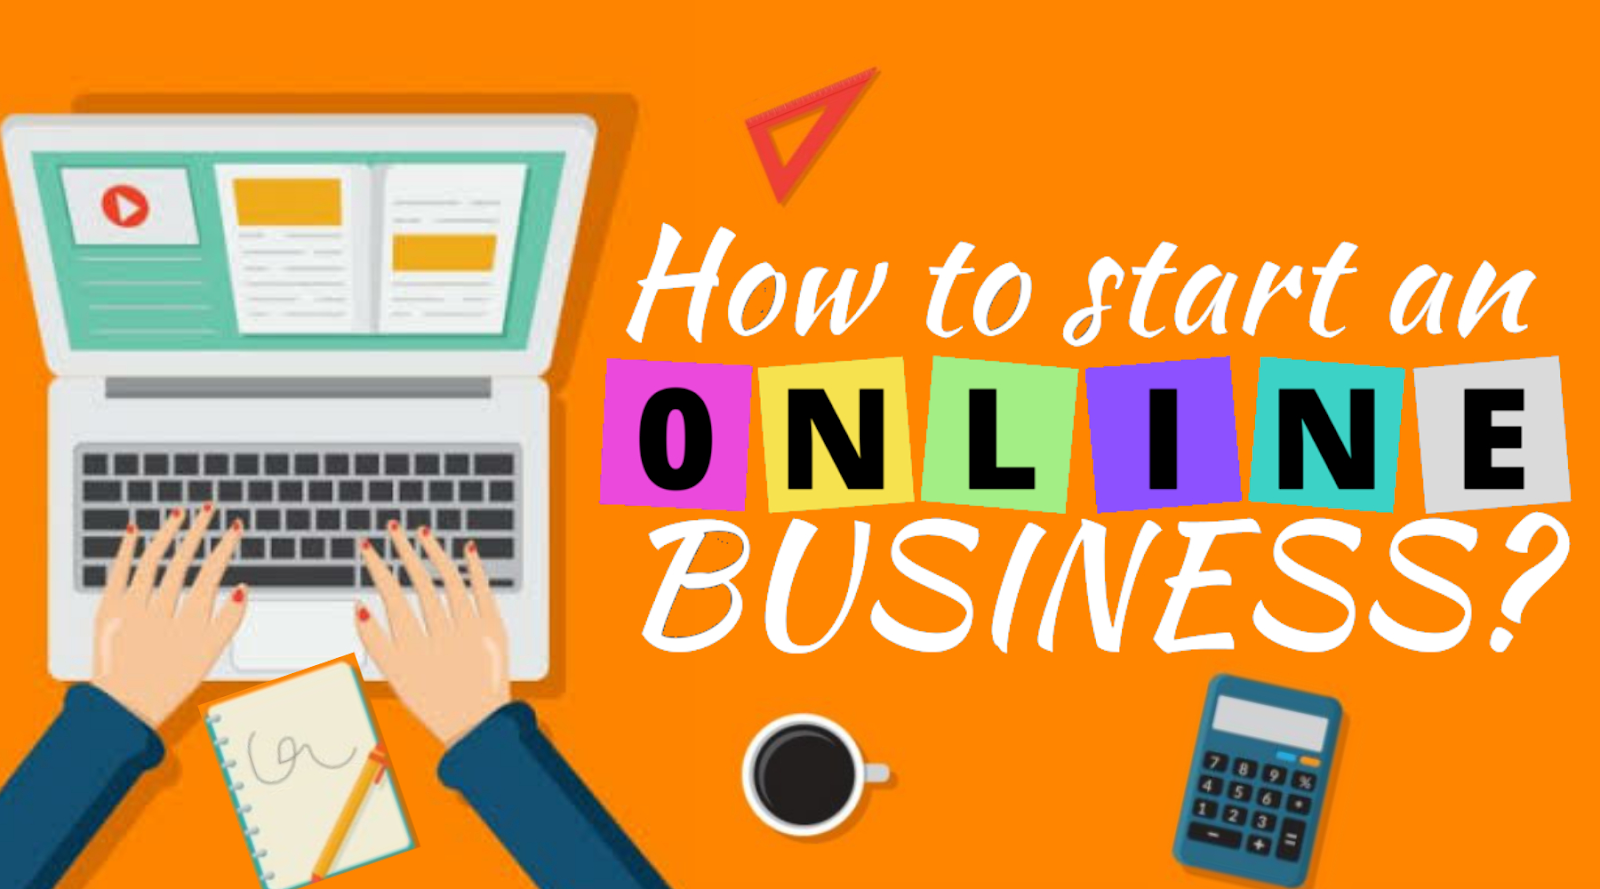 how to start an online business for free, how to start an online business with no money, how to start an online business at home, how to start an online business from home, how to start an online business